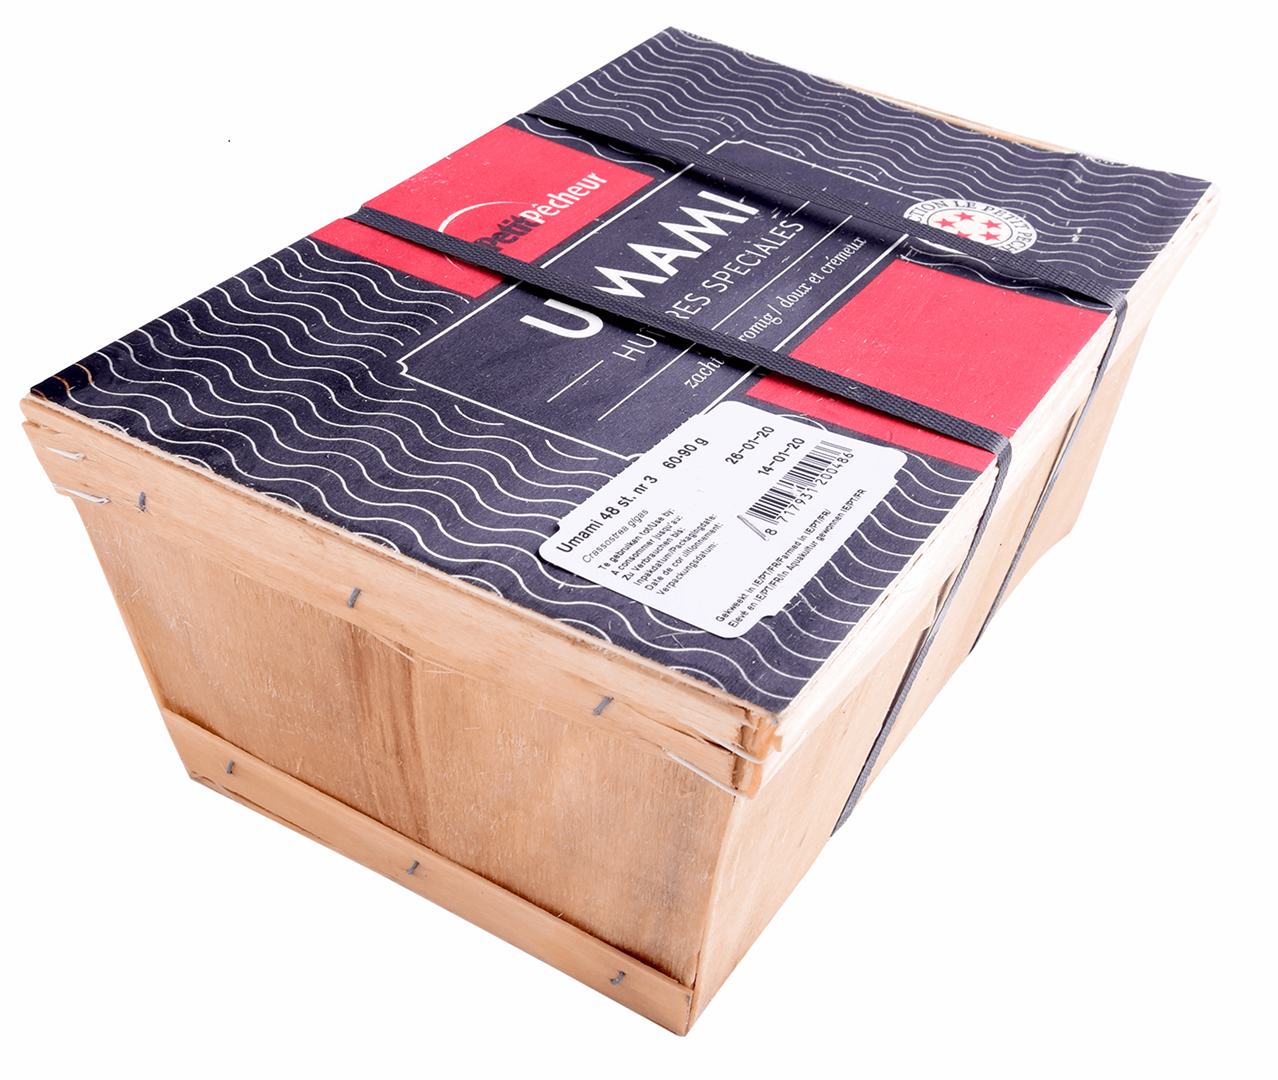 Productafbeelding OYSTERS UNAMI, SIZE: 3 BASKET 48 PIECES